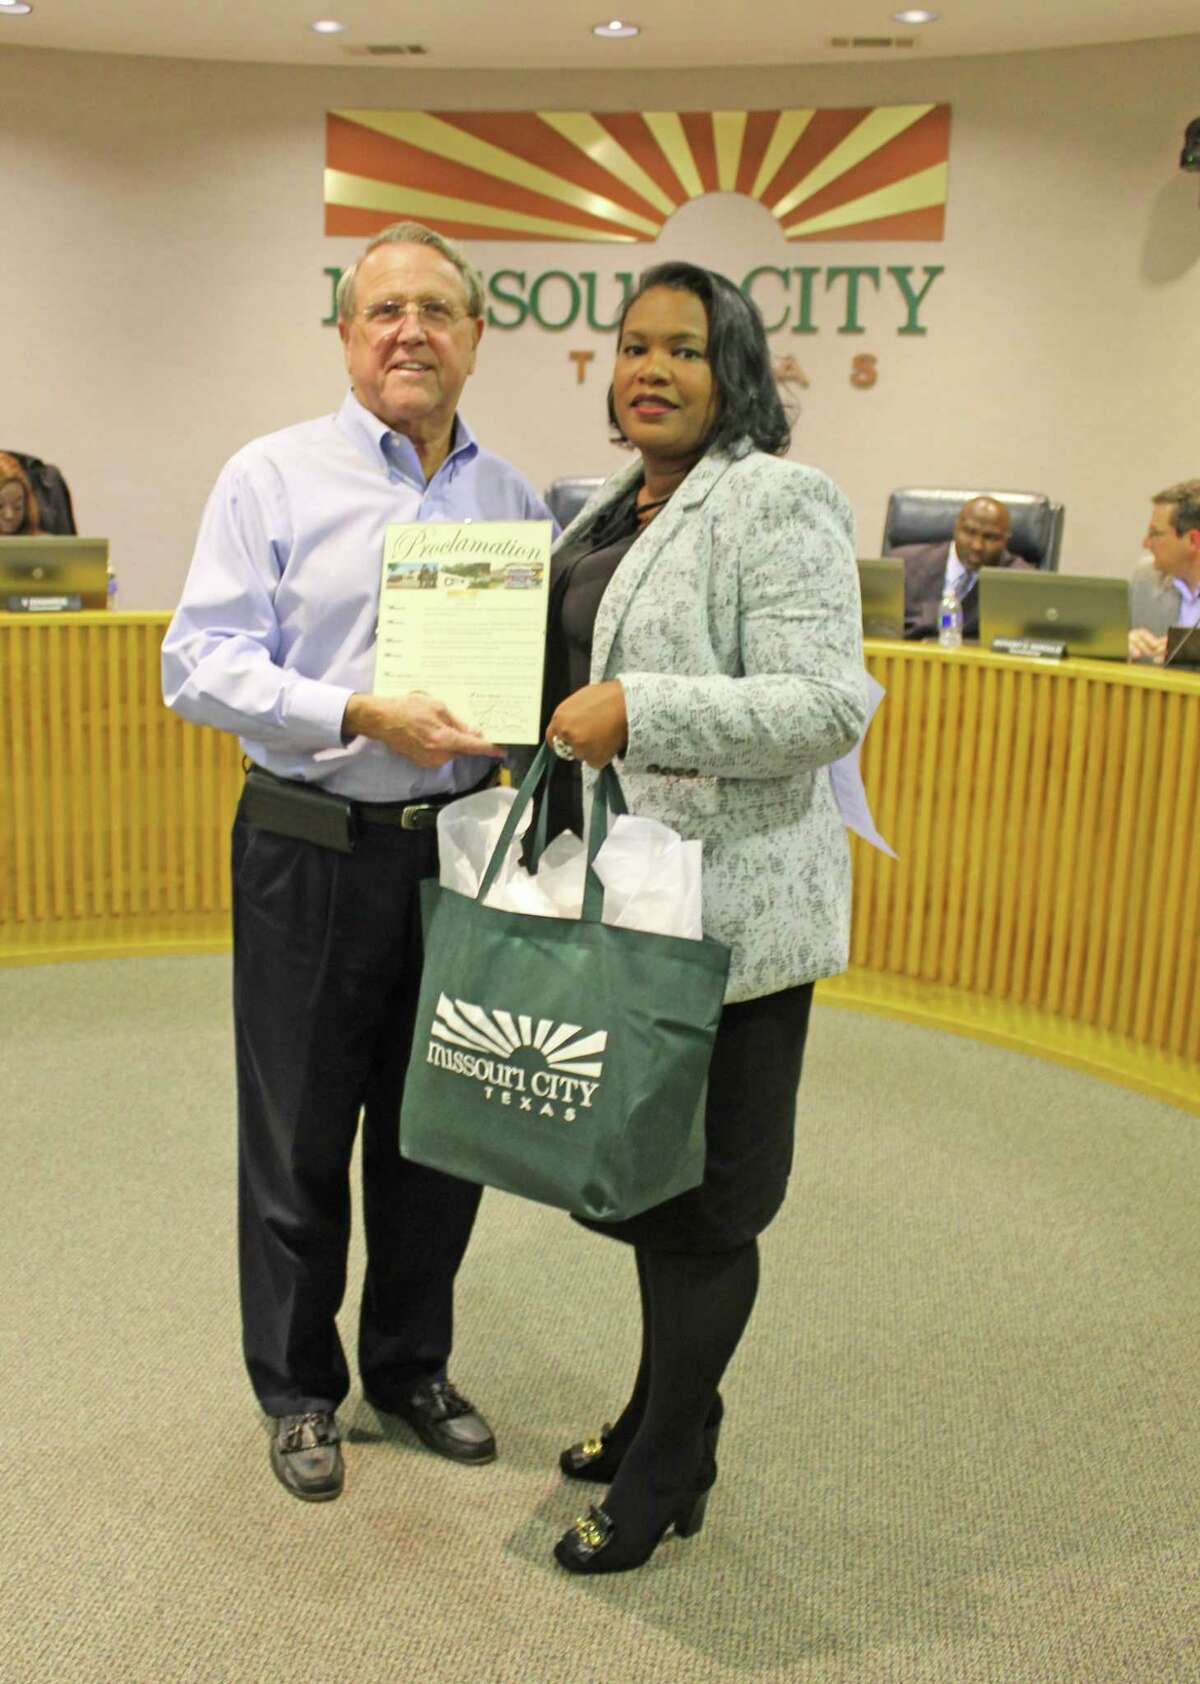 Outgoing Missouri City Mayor Allen Owen presents a proclamation to incoming Mayor Yolanda Ford during a ceremony on Dec. 17, 2018, in Council Chambers.